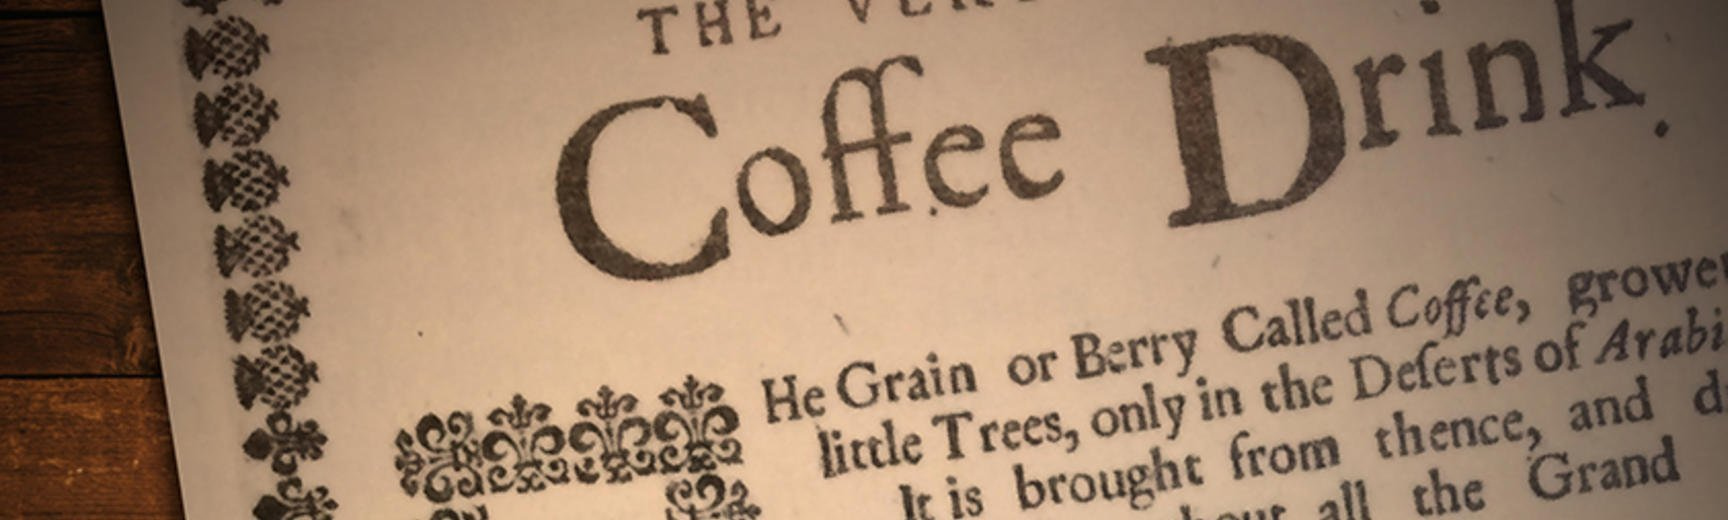 From Istanbul to Oxford - The Origins of Coffee Drinking in England - A free display at The Ashmolean Museum